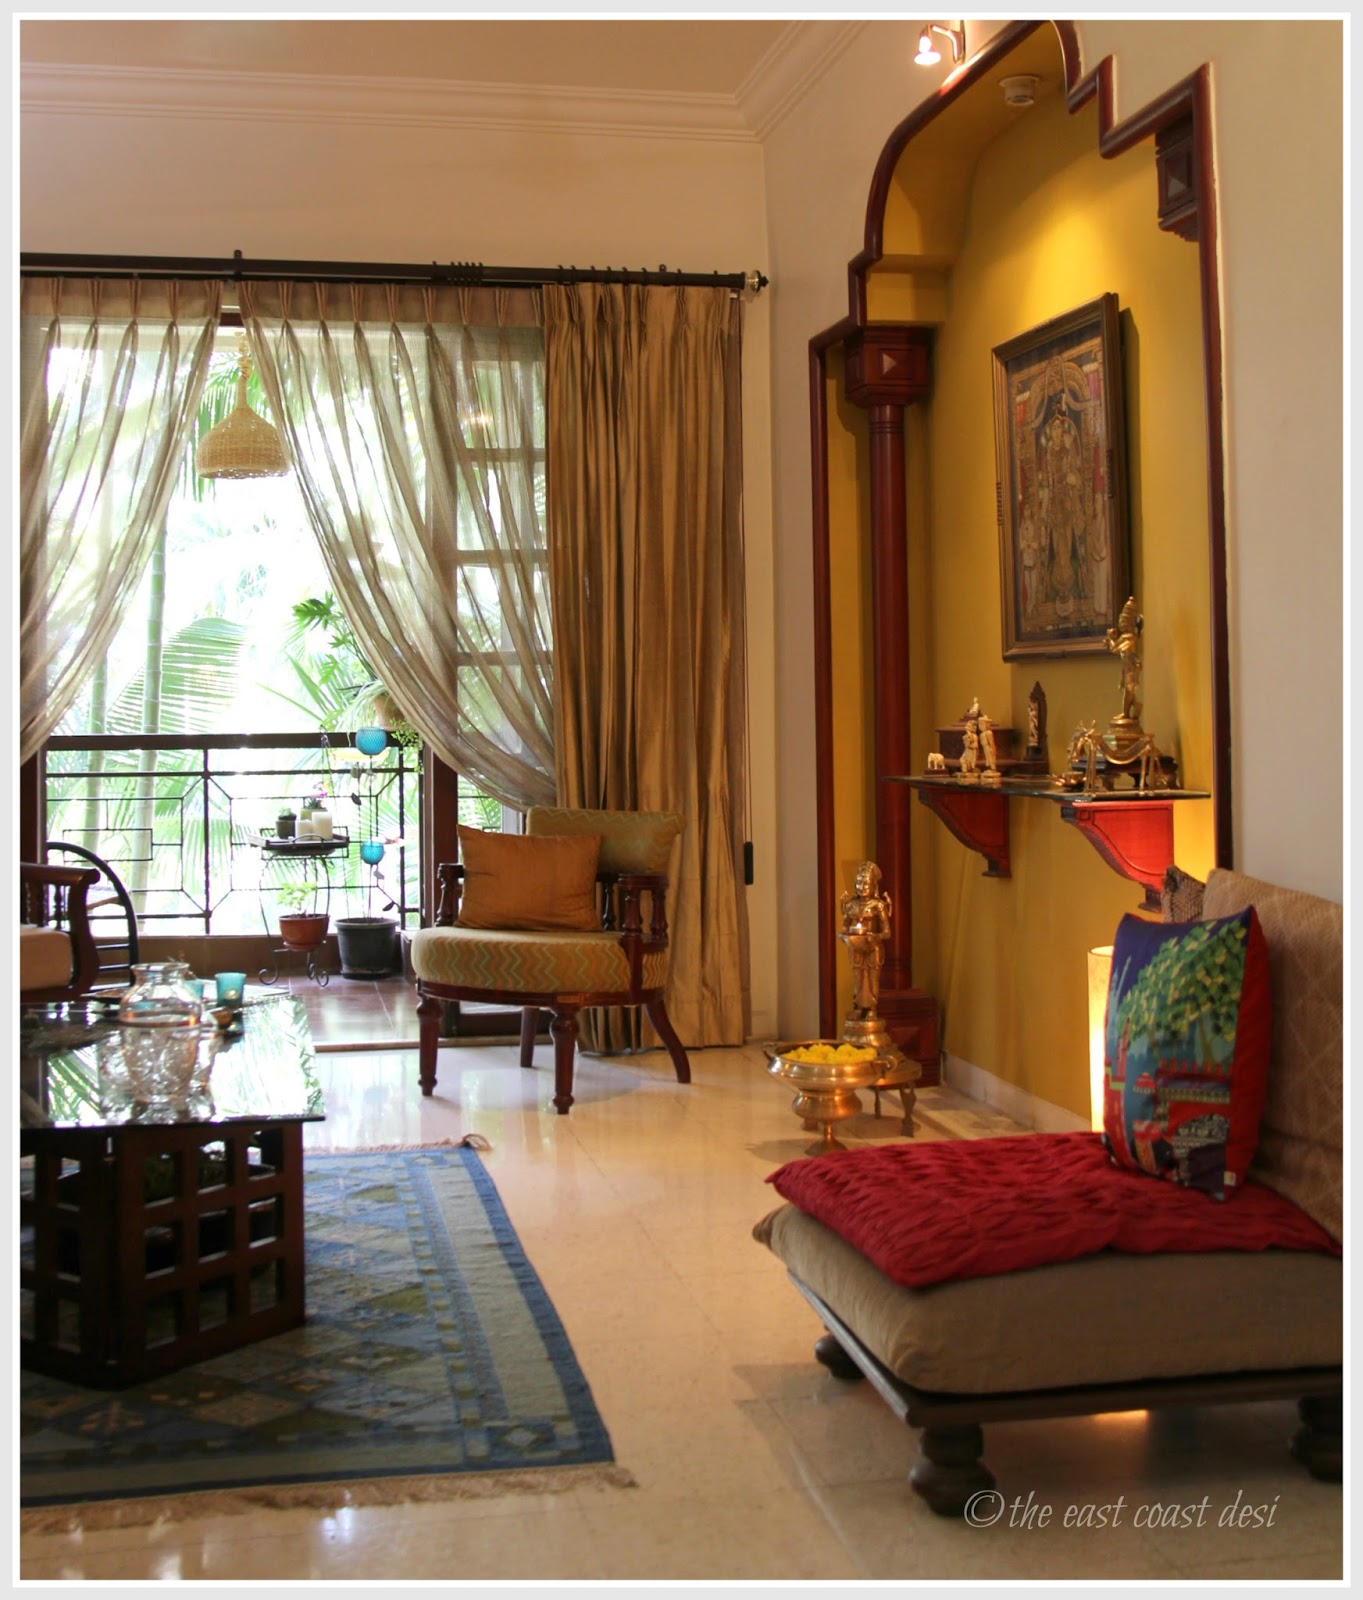 The east coast desi living with what you love home tour for Living room interior design india